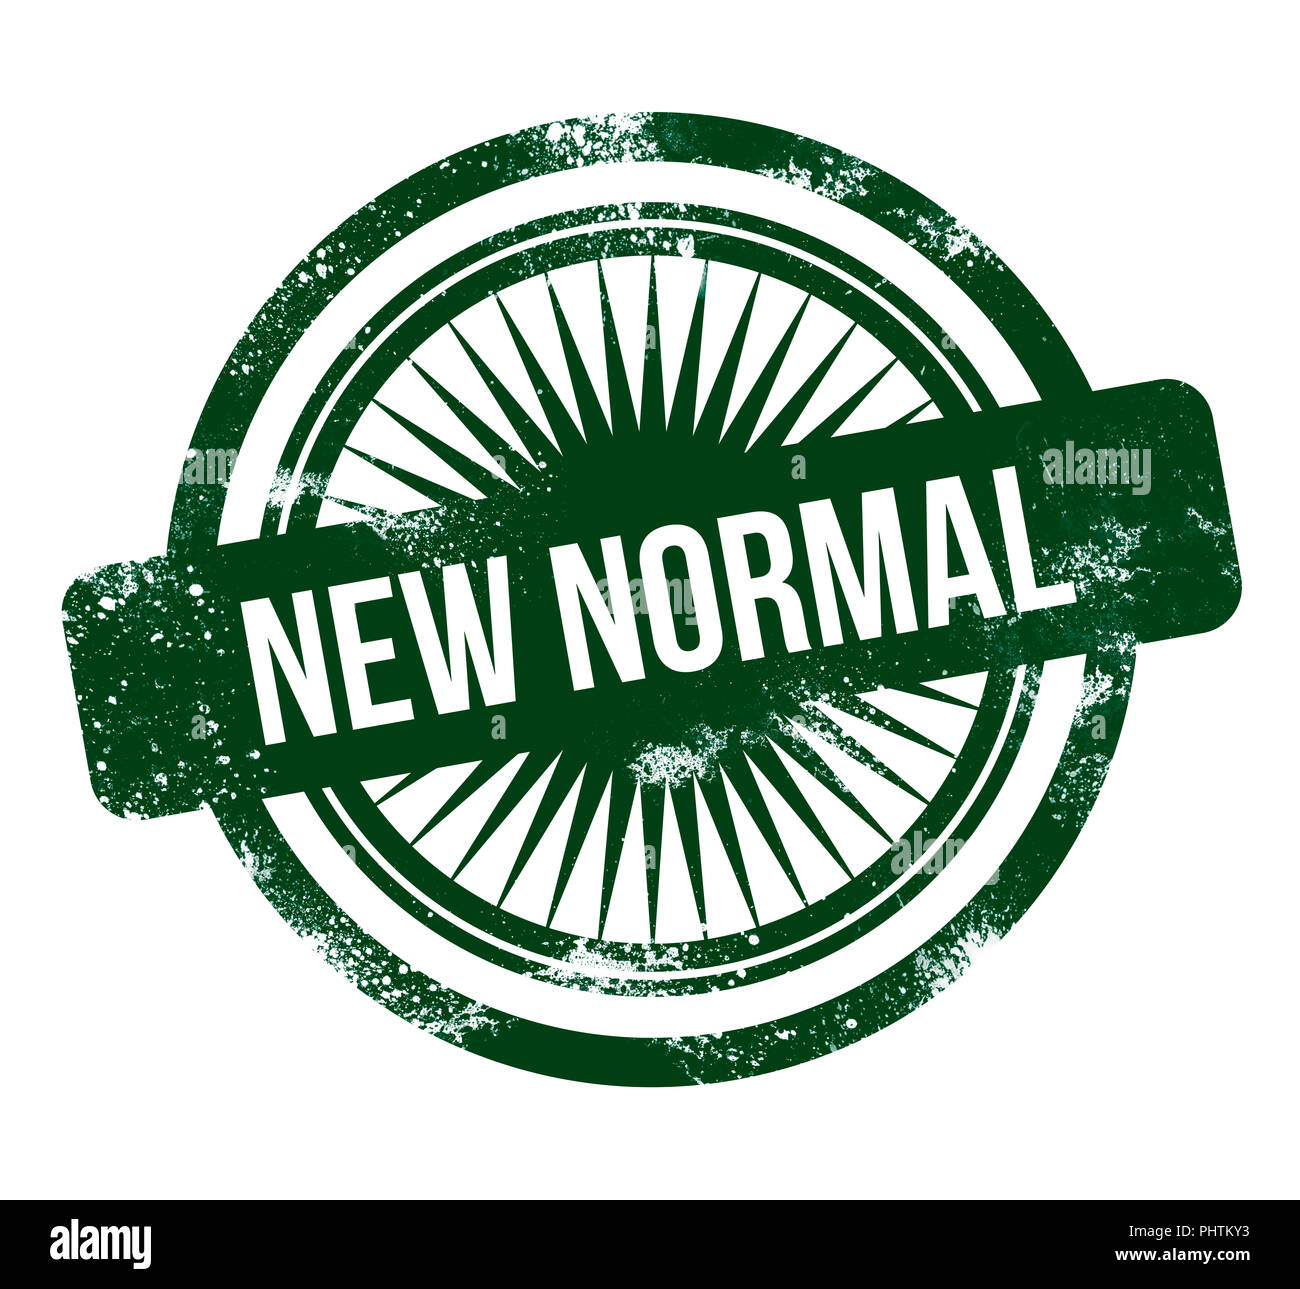 New Normal Green Grunge Stamp Stock Photo 217516071 Alamy